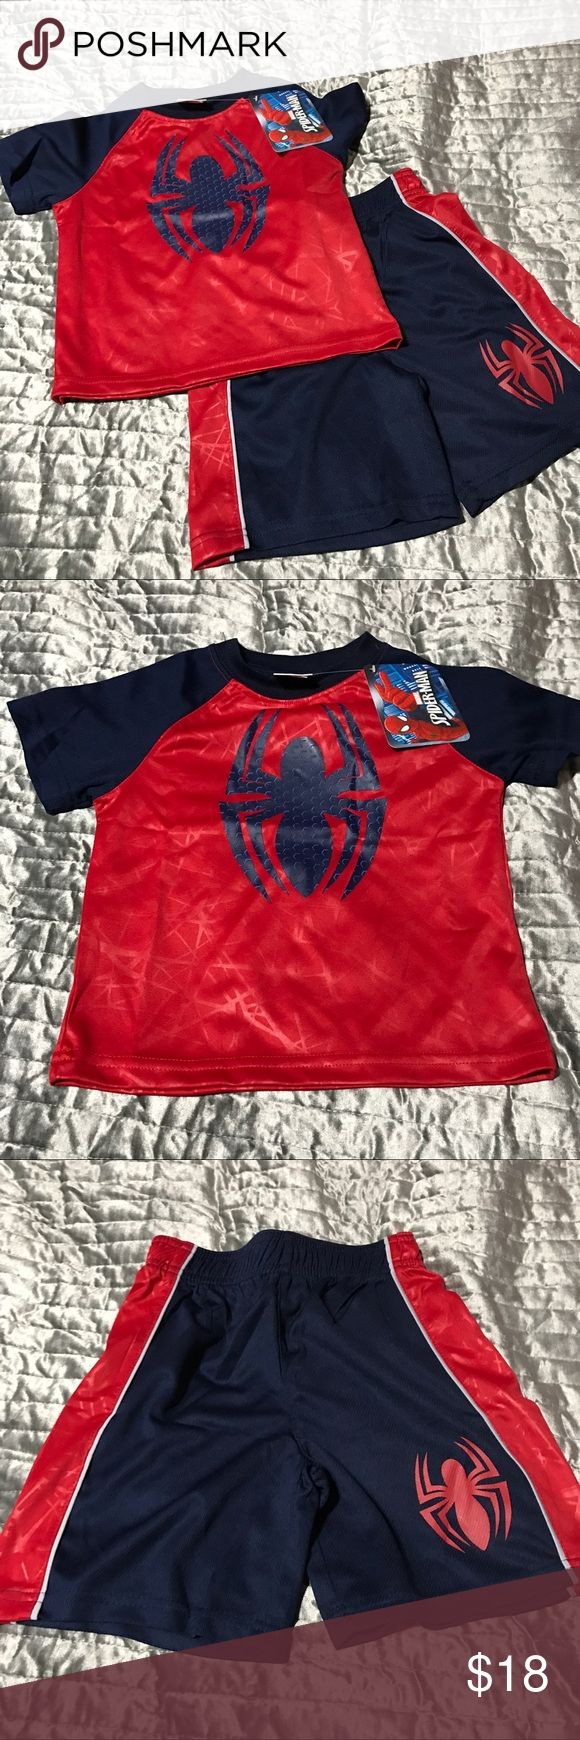 Spder-Man 2-Pc t-shirt & short set New Matching Sets